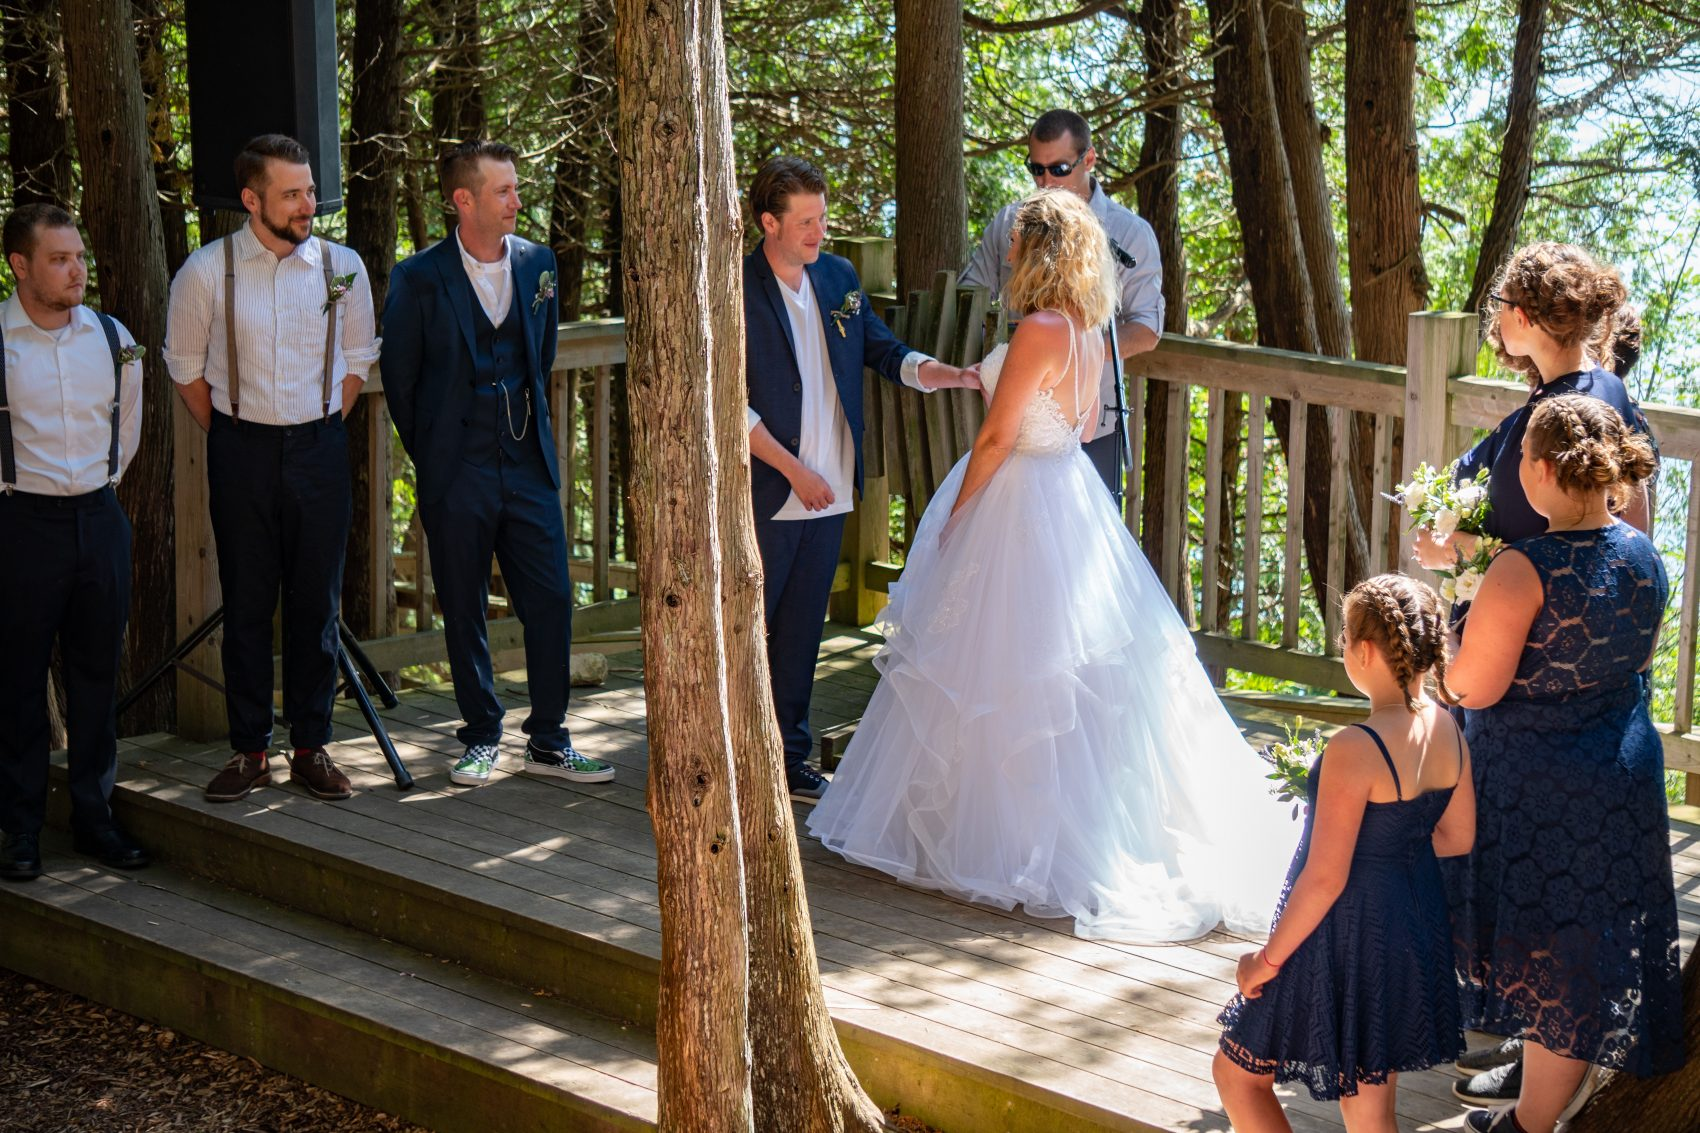 A wedding couple surrounded by their wedding party and officiant are on the stage of the Outdoor Chapel in the midst of their wedding ceremony.